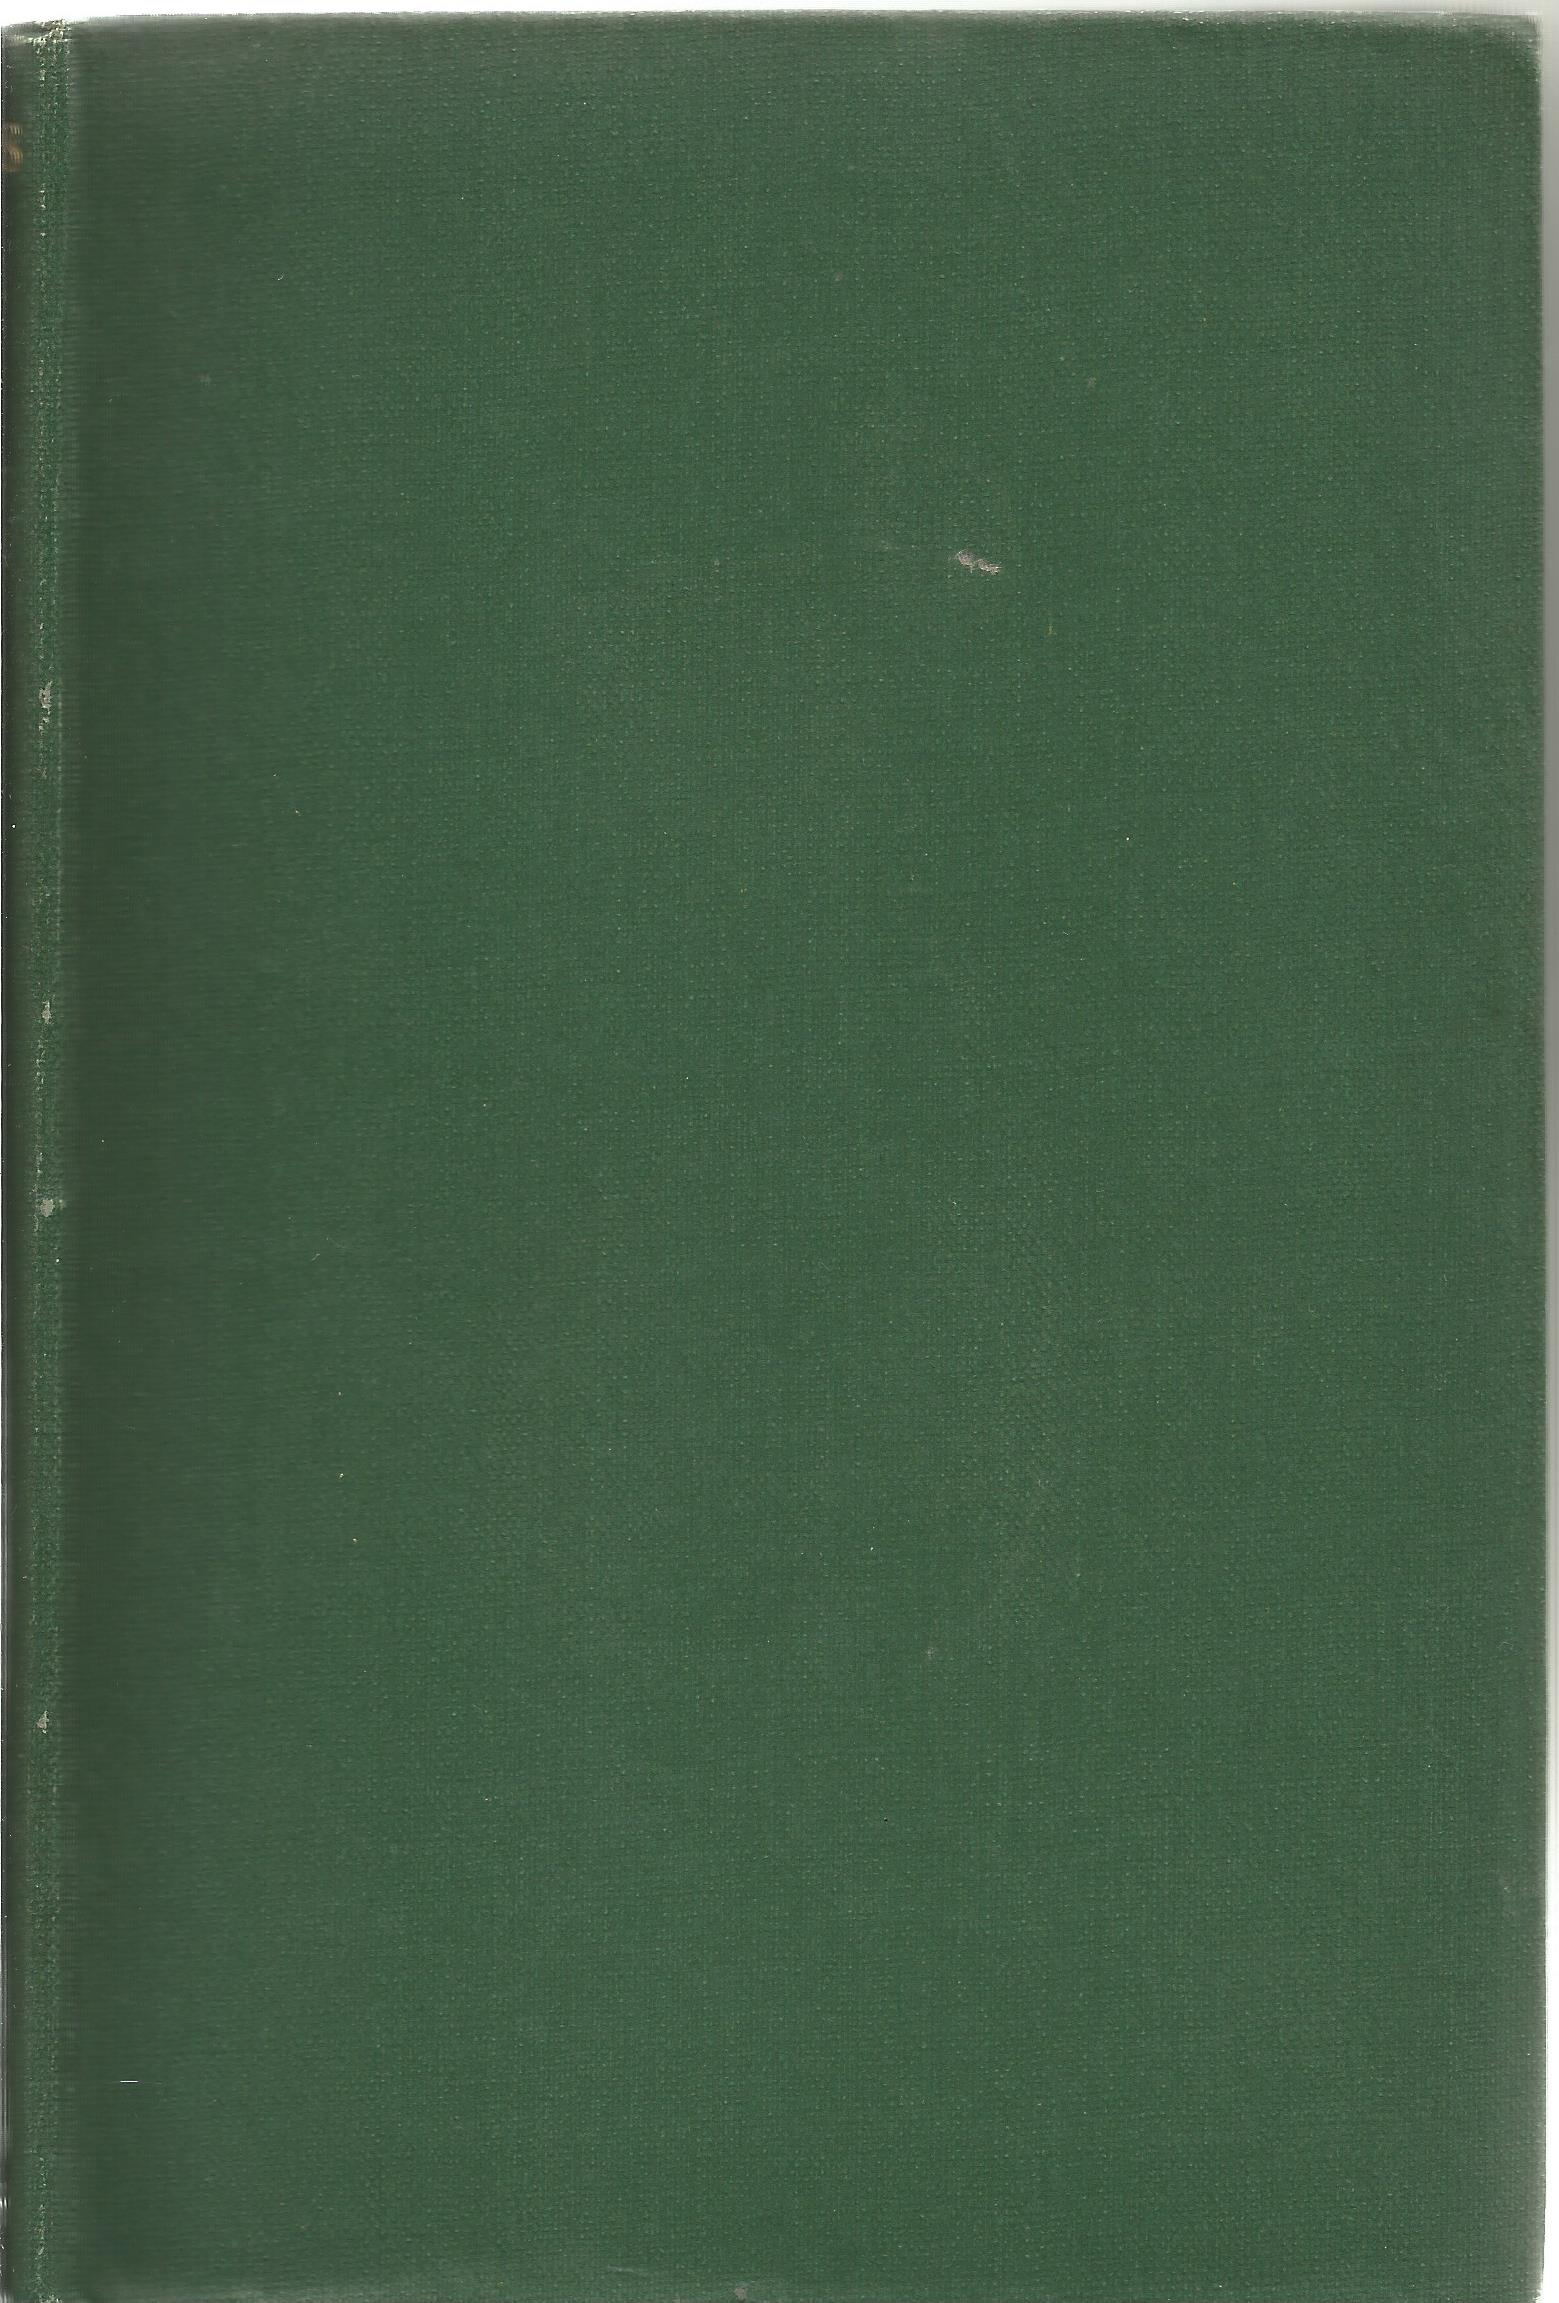 Charles Morgan Hardback Book Reflections in a Mirror (second series) signed by the Author on the